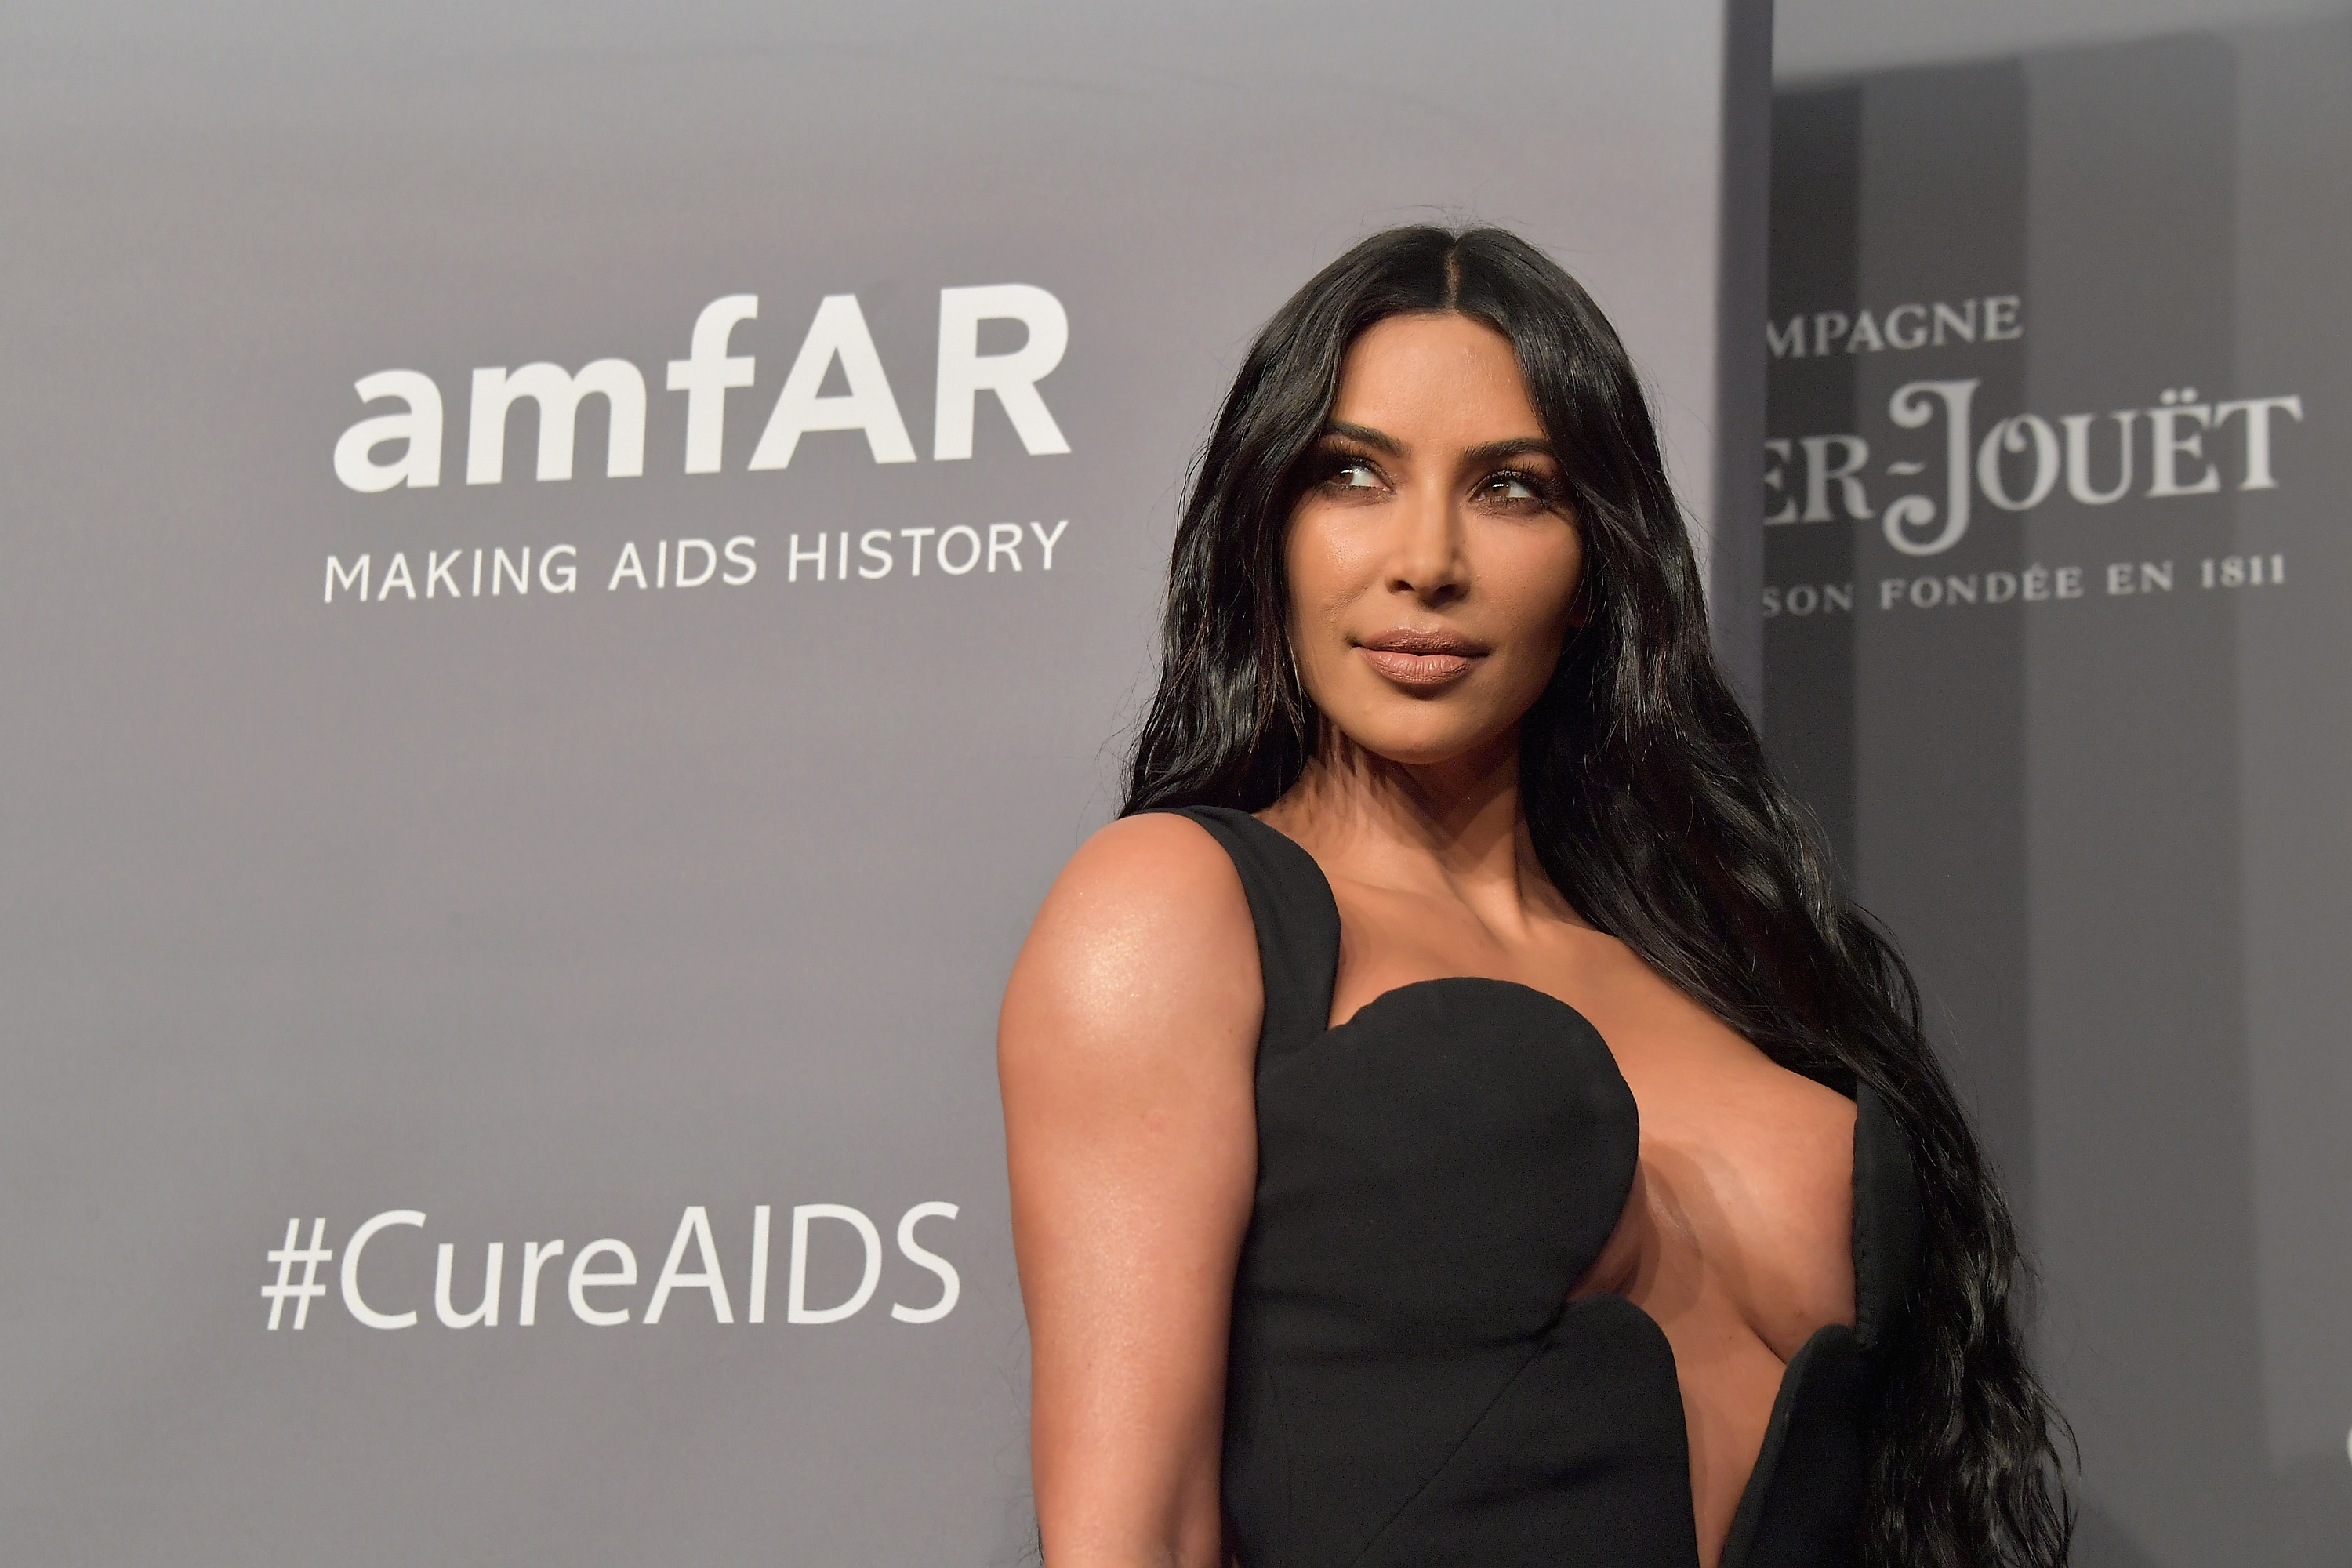 Kim Kardashian West has been accused of leaking her own sex tape in 2003 to gain media attention.